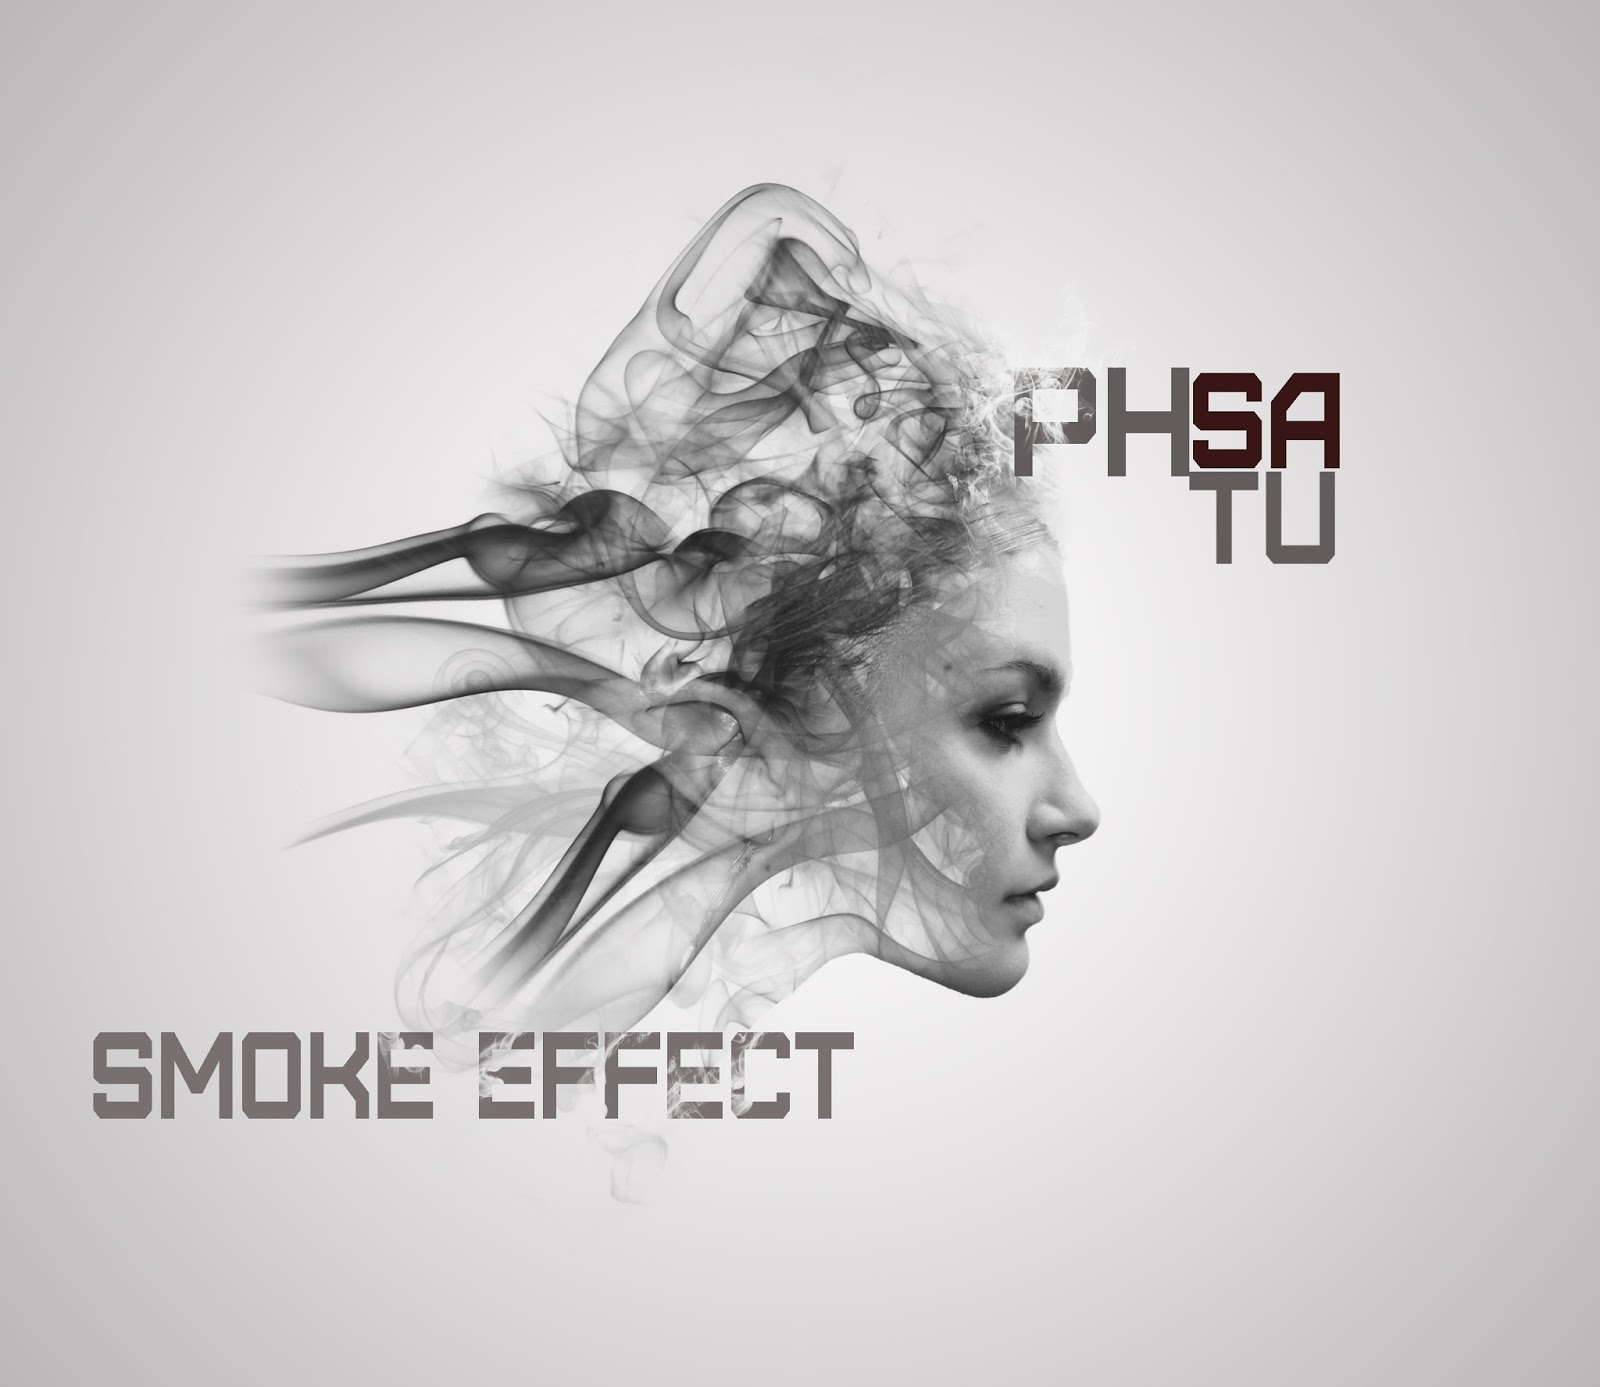 Smoke effect photoshop tutorial photoshop stars in this tutorial well see how to transform an image into an awesome smoke photo effect using adobe photoshop the main trick to this effect is to find a baditri Image collections